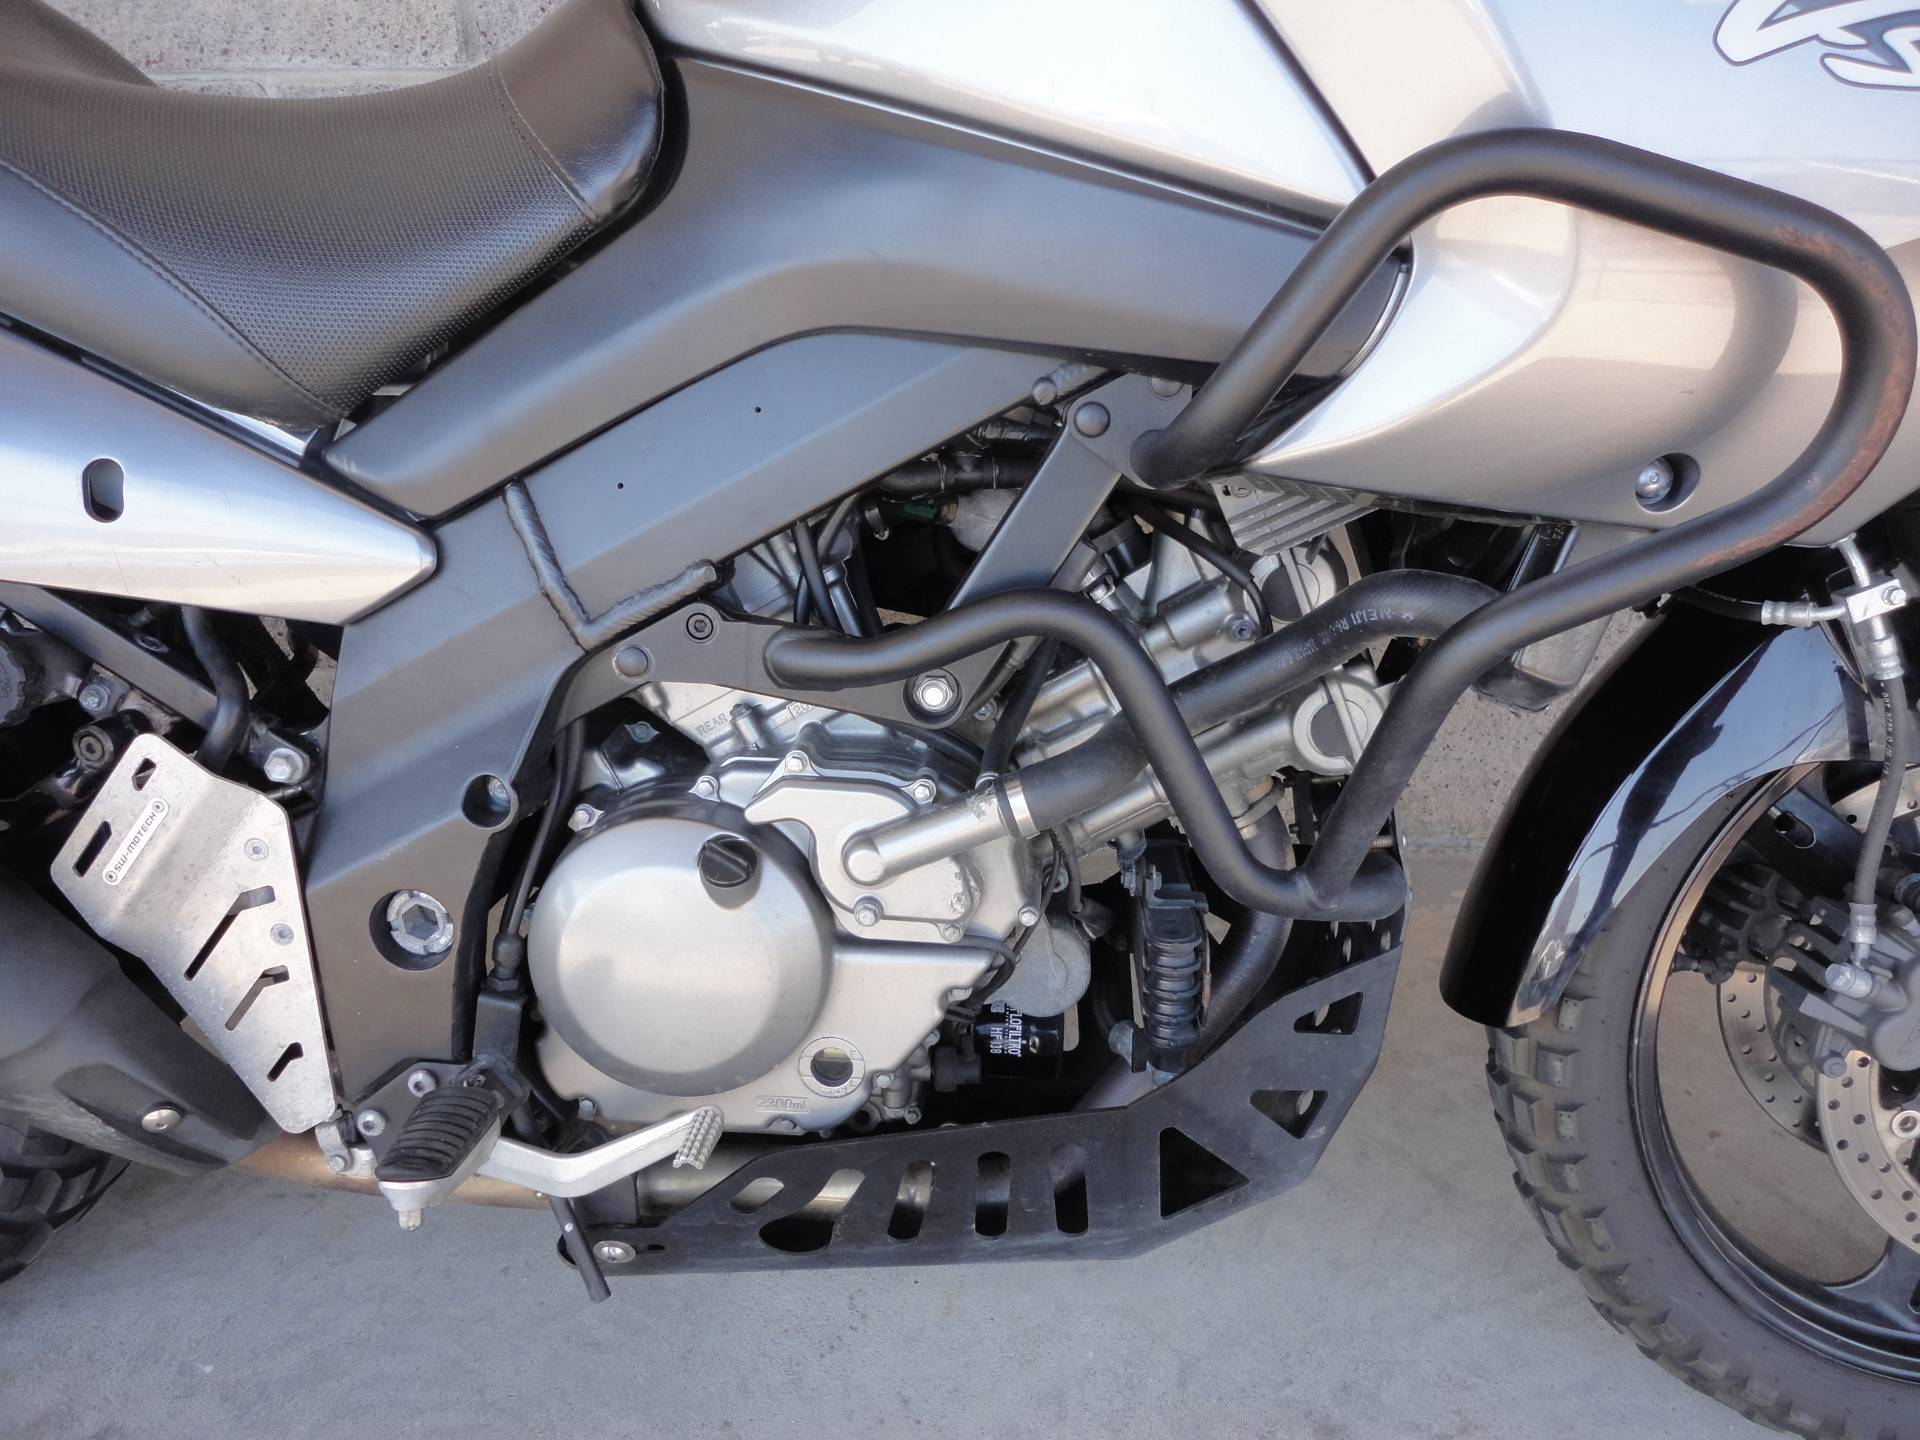 2007 Suzuki V-Strom® 650 in Denver, Colorado - Photo 18